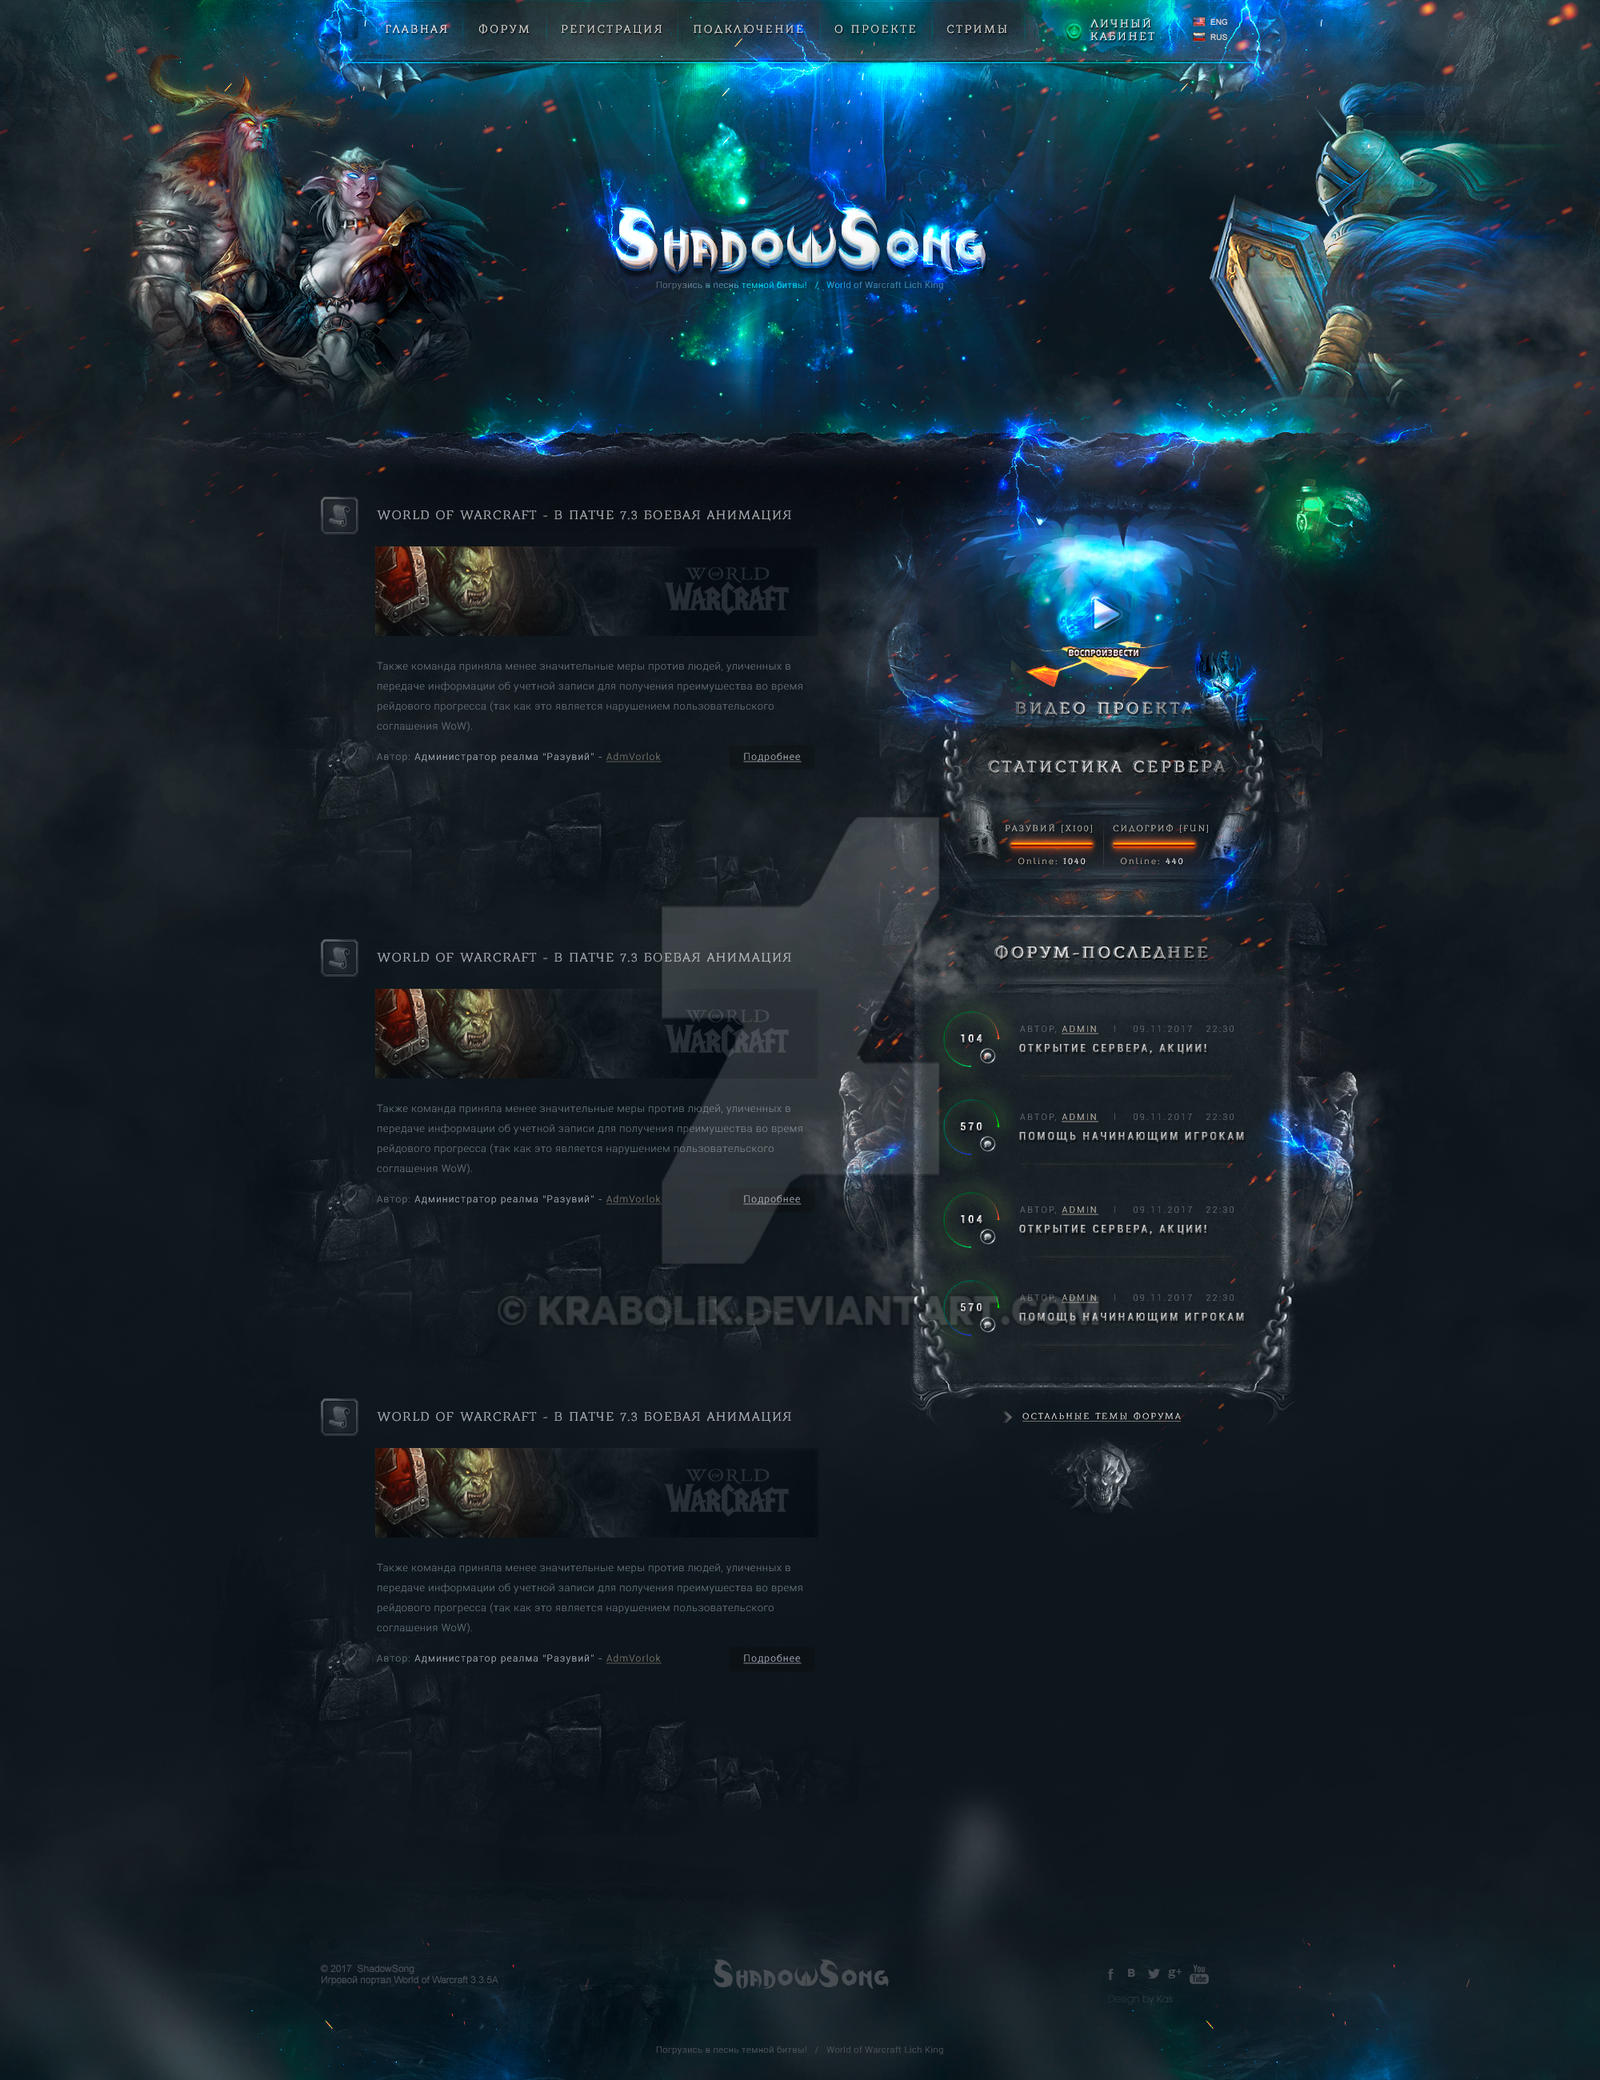 ShadowSong world of warcraft servers (web-design) by